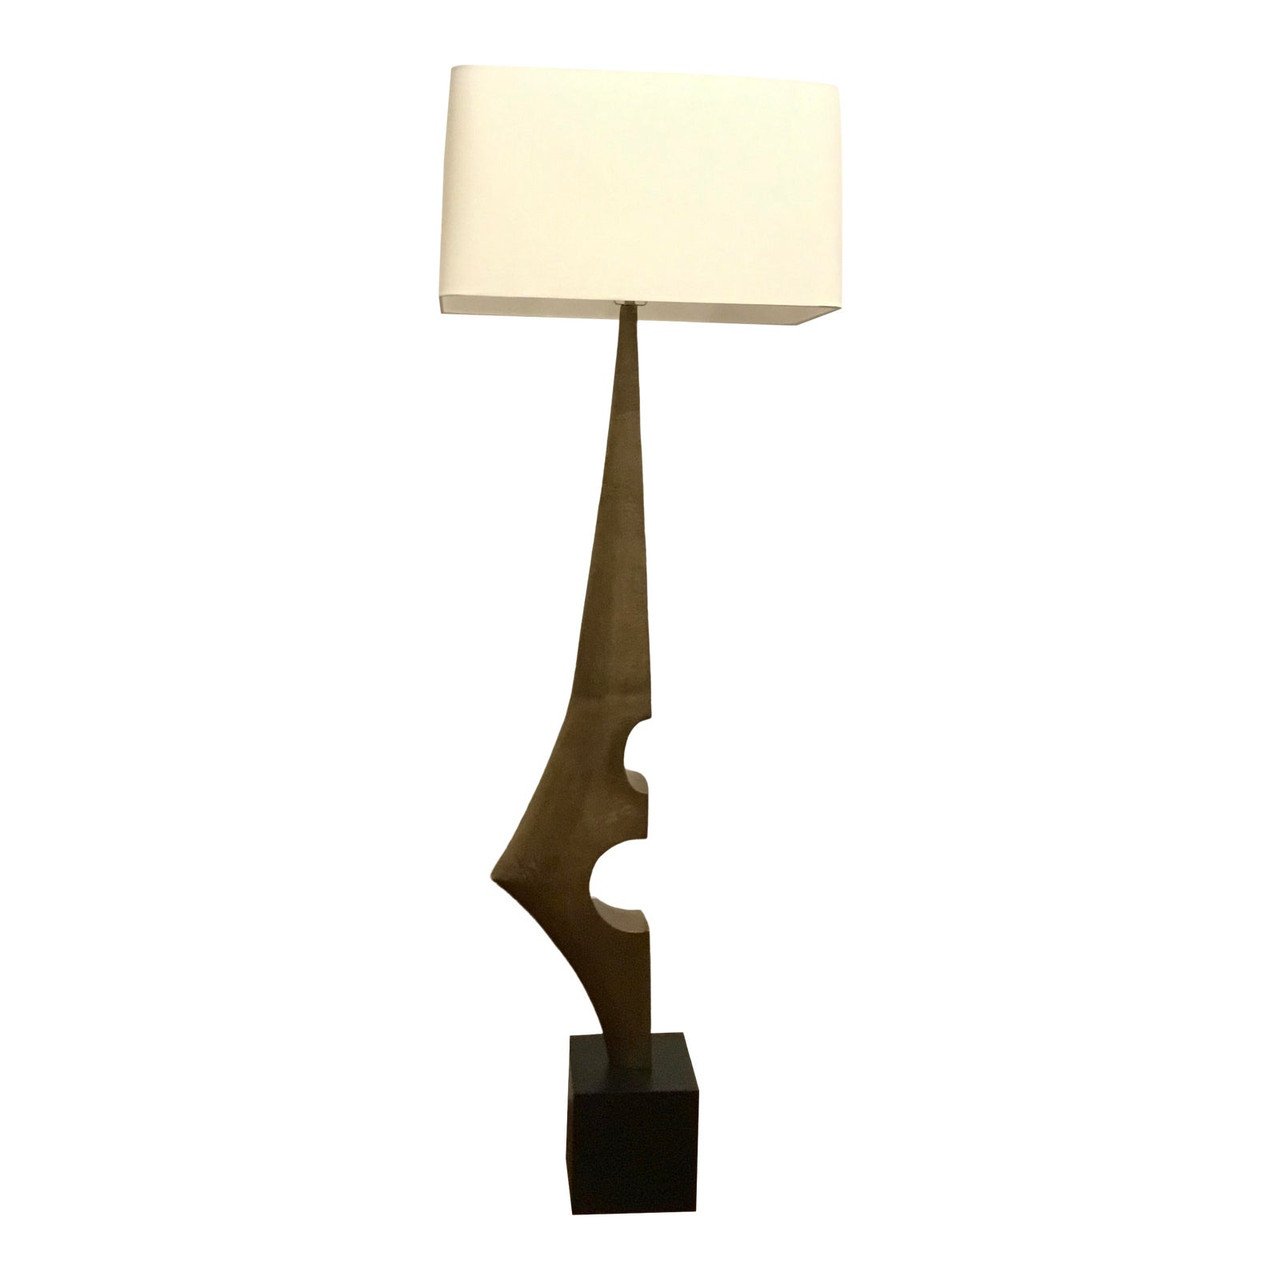 Image of: Arteriors Mid Century Modern Style Sculptural Antique Brass Finished Umberto Floor Lamp United States